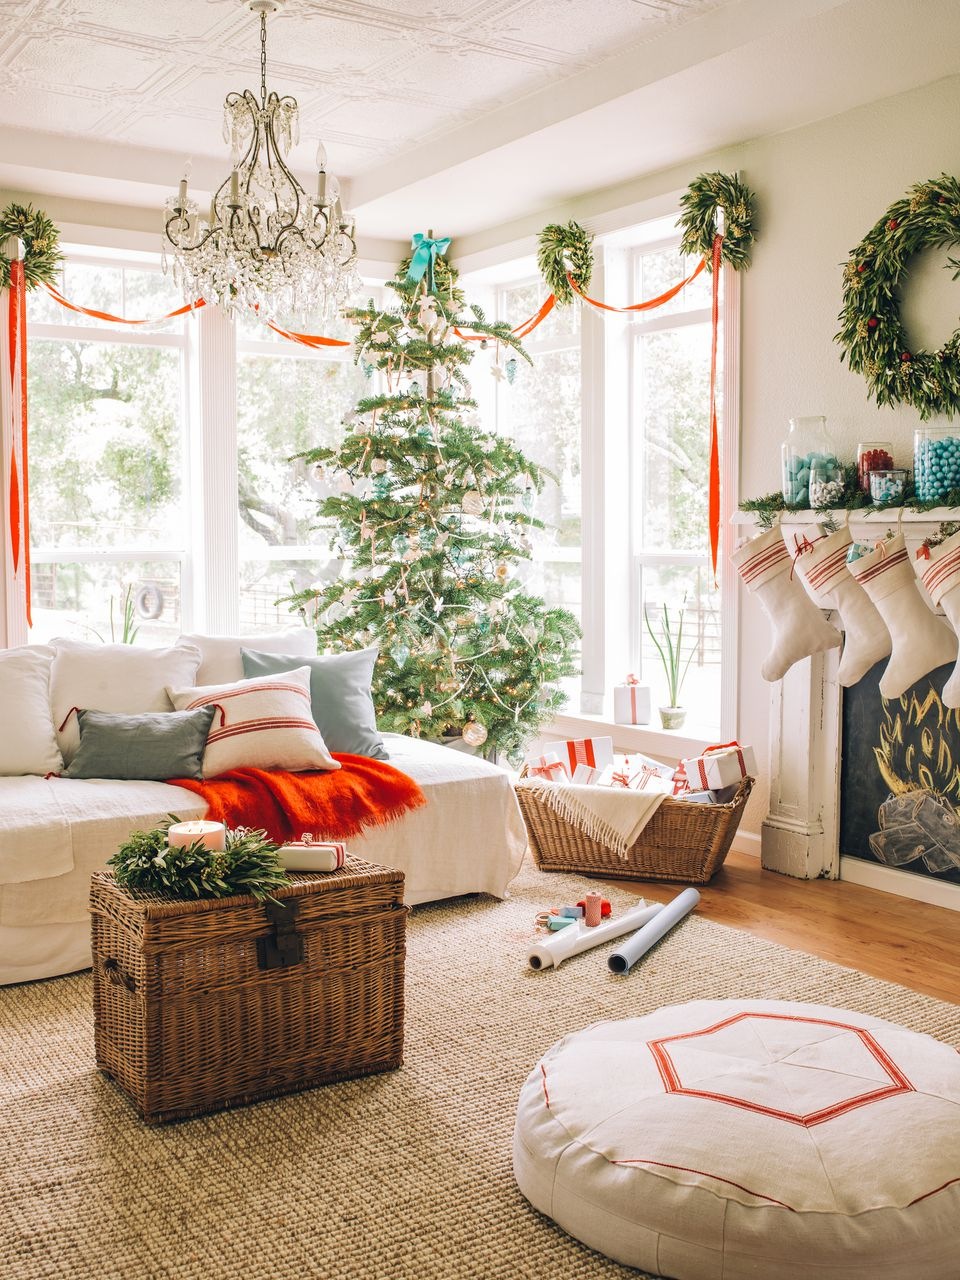 Beautiful ways to decorate the living room for christmas